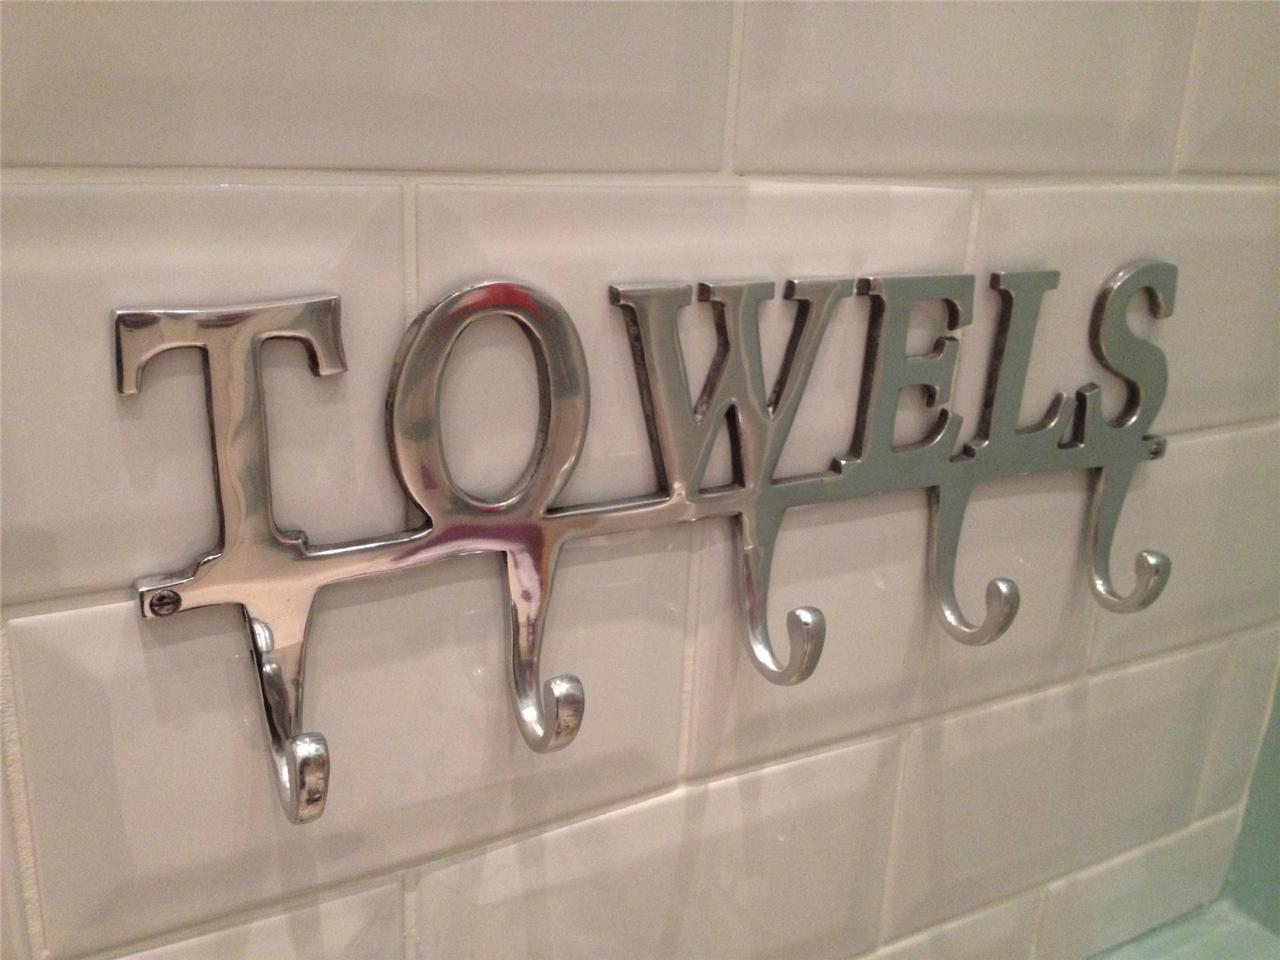 Merveilleux LARGE TOWEL HOLDER RACK,BATH HANGER HOOKS,WALL MOUNTED BATHROOM ALUMINIUM  CHROME | EBay